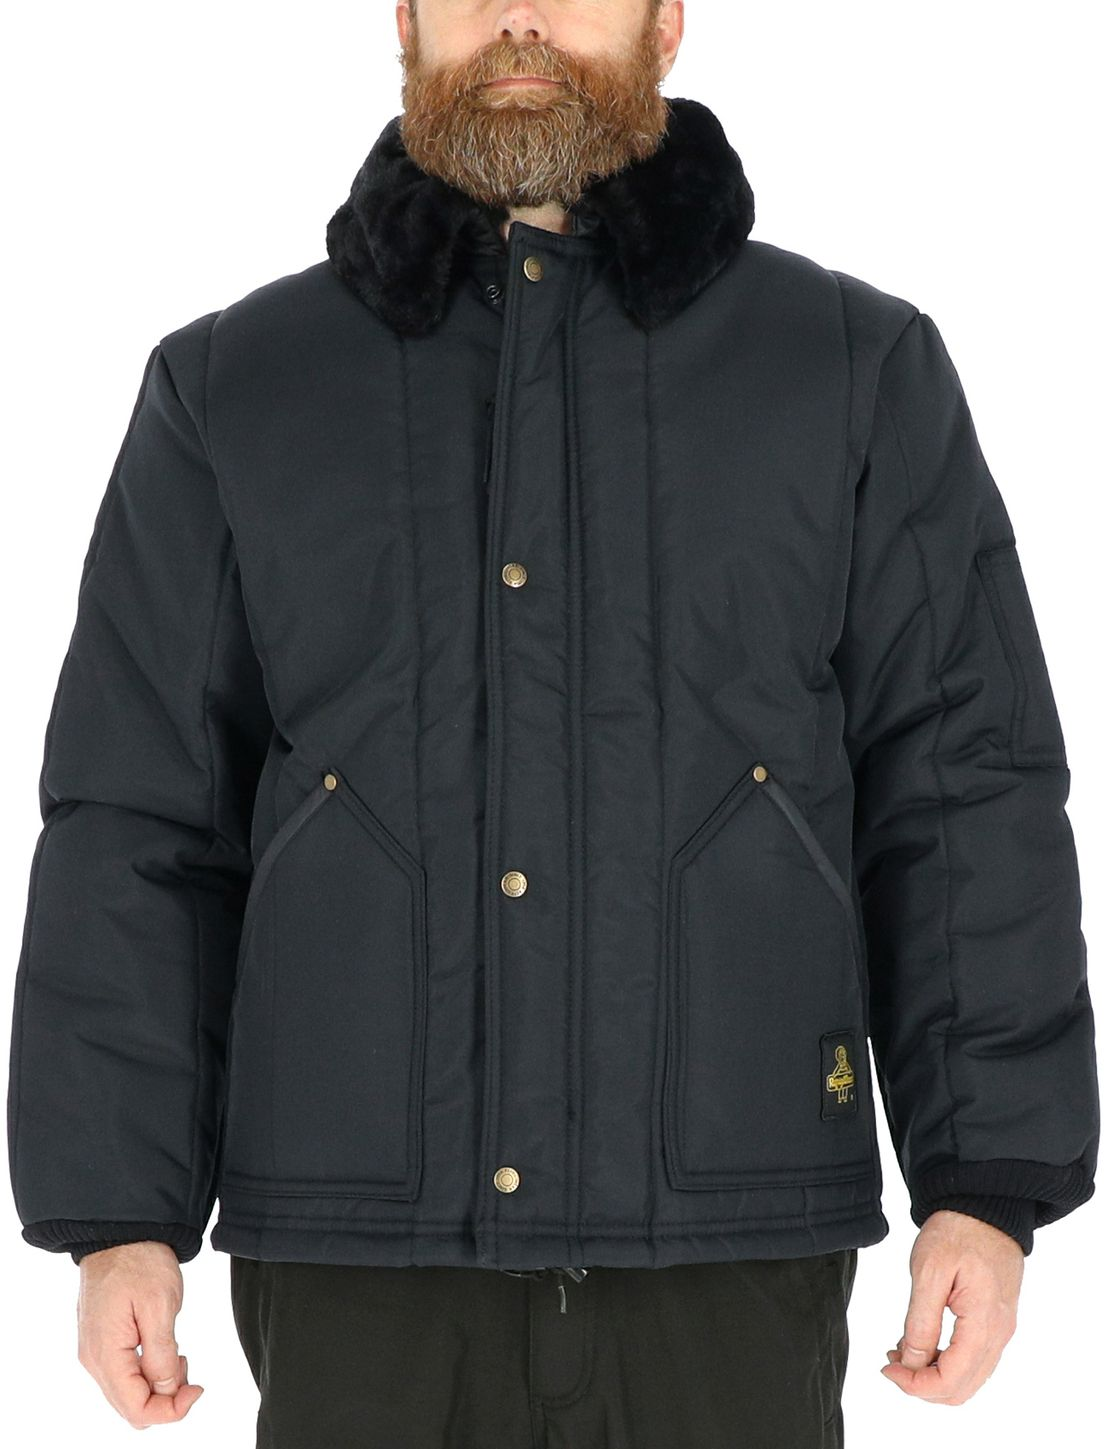 RefrigiWear 0359 Iron-Tuff Cold Weather Work Jacket Example